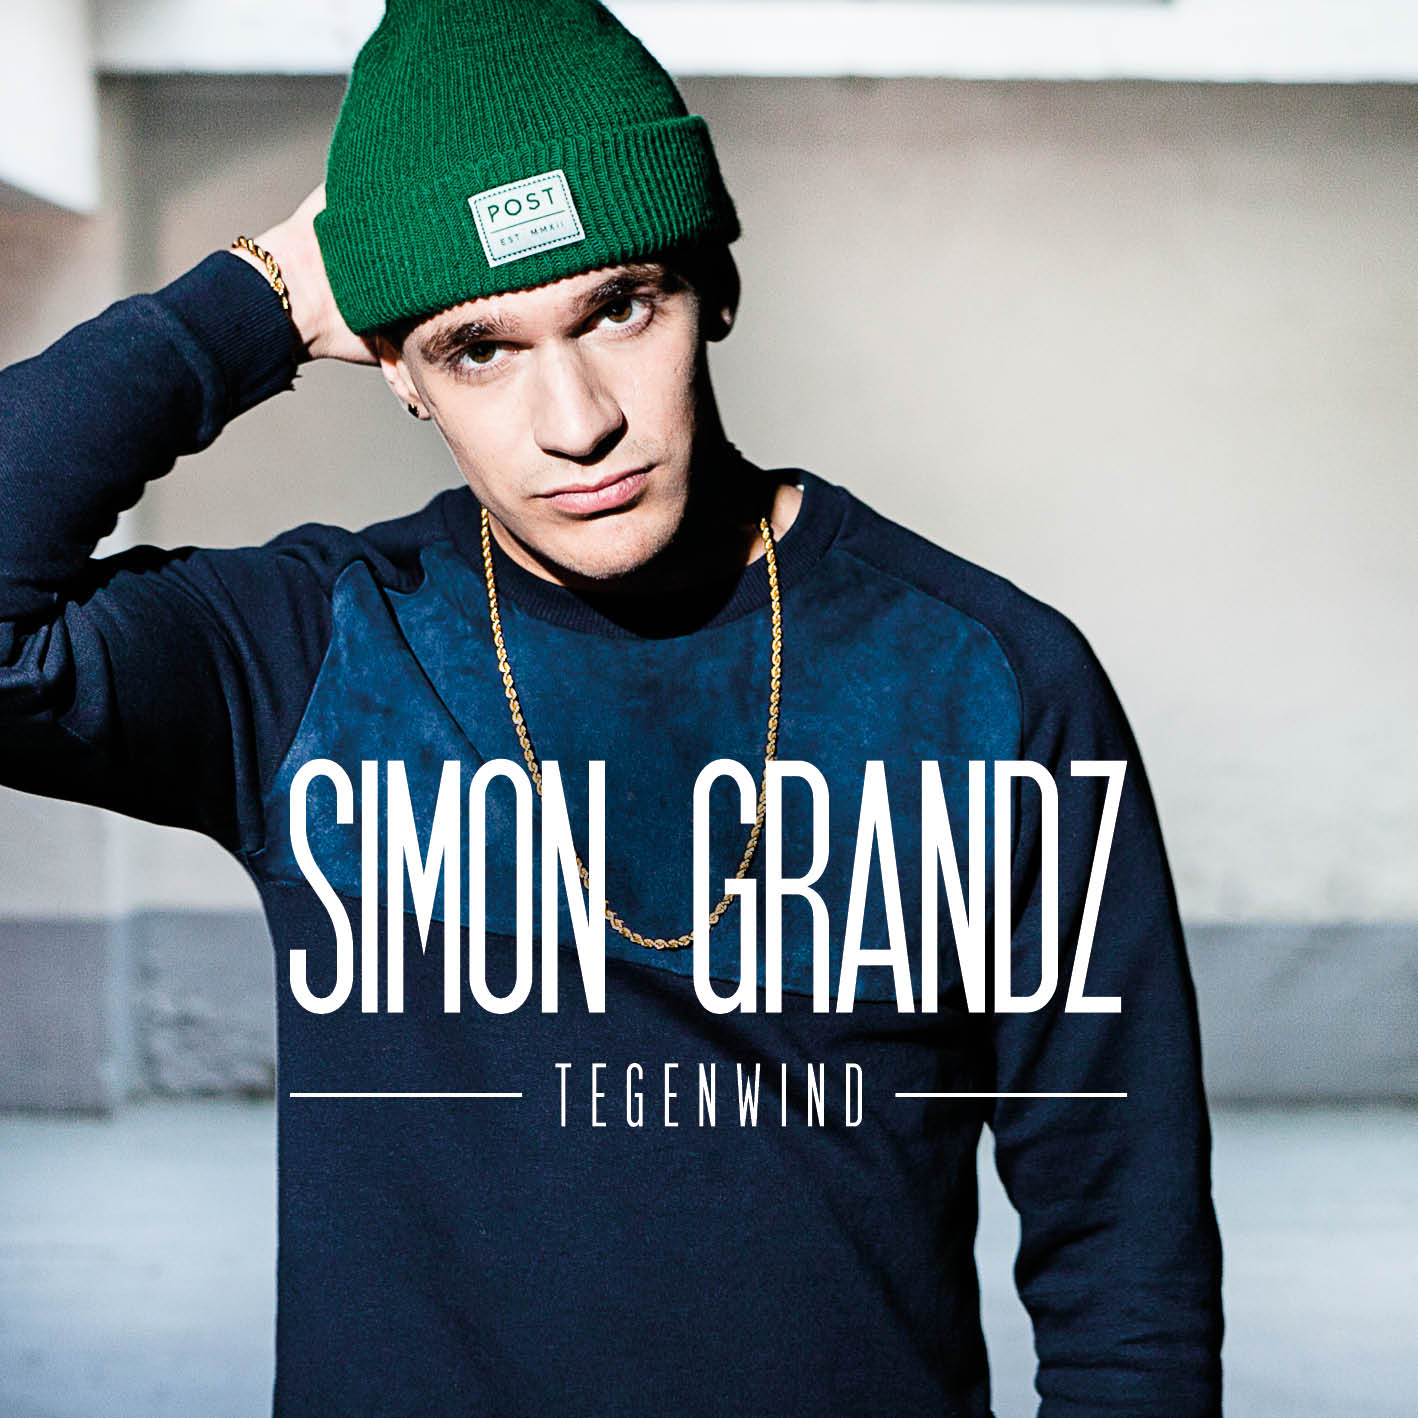 flus-simon-grandz-tegenwind-EP-download-gratis-2